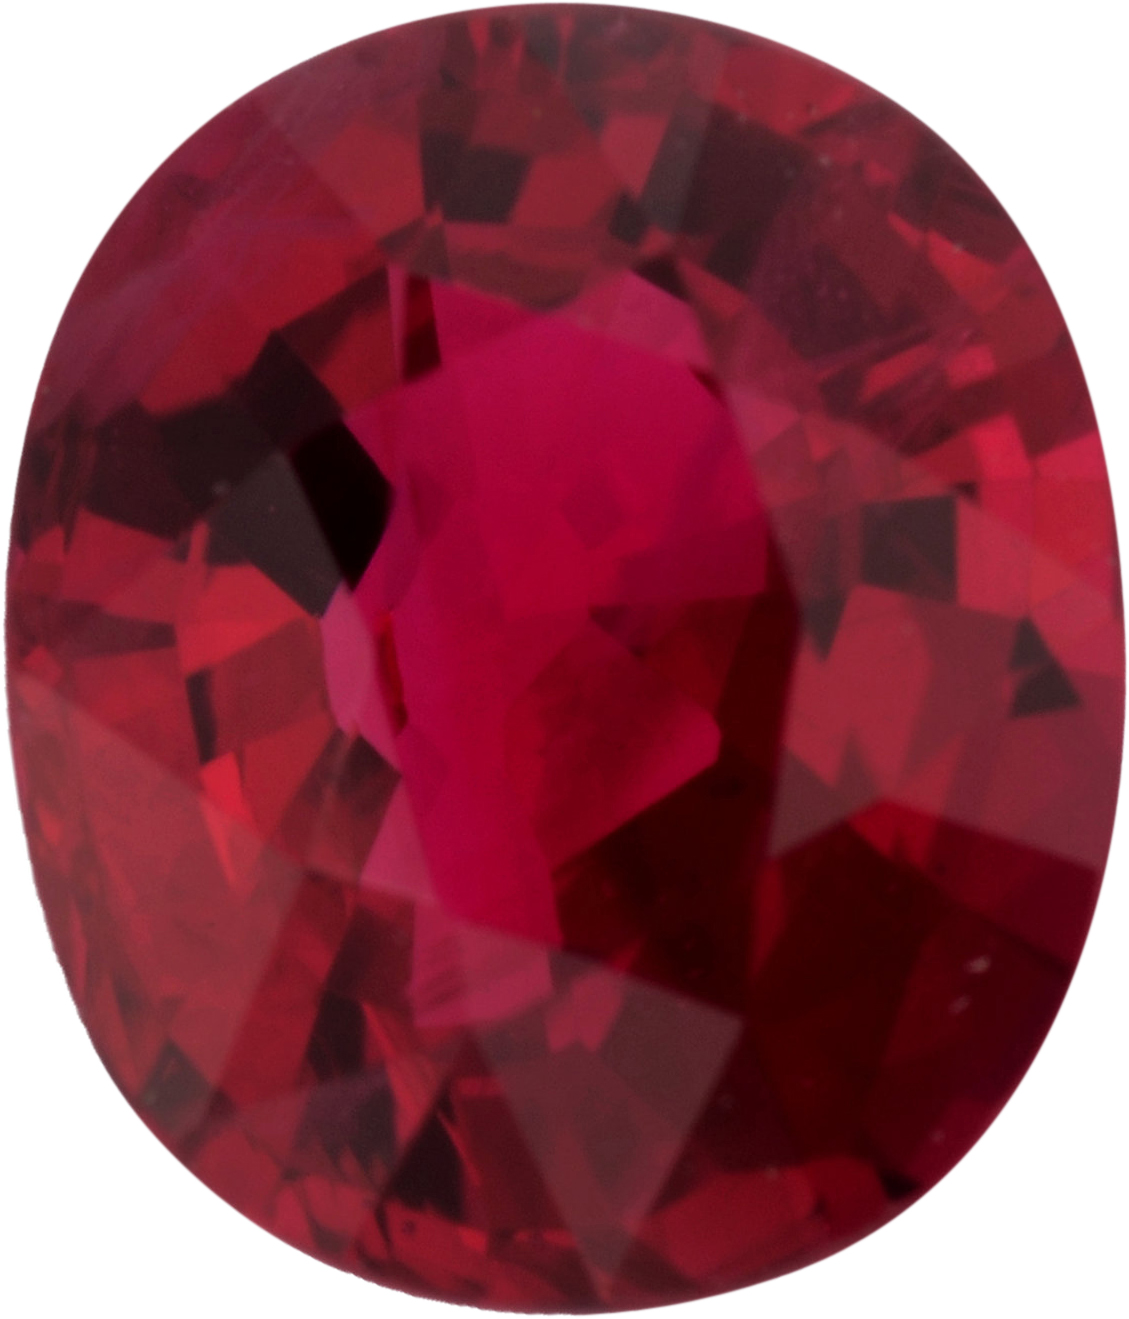 6.42 x 5.44 mm, Antique Cushion Cut Genuine Ruby Gem, Strong Red, 1.01 carats